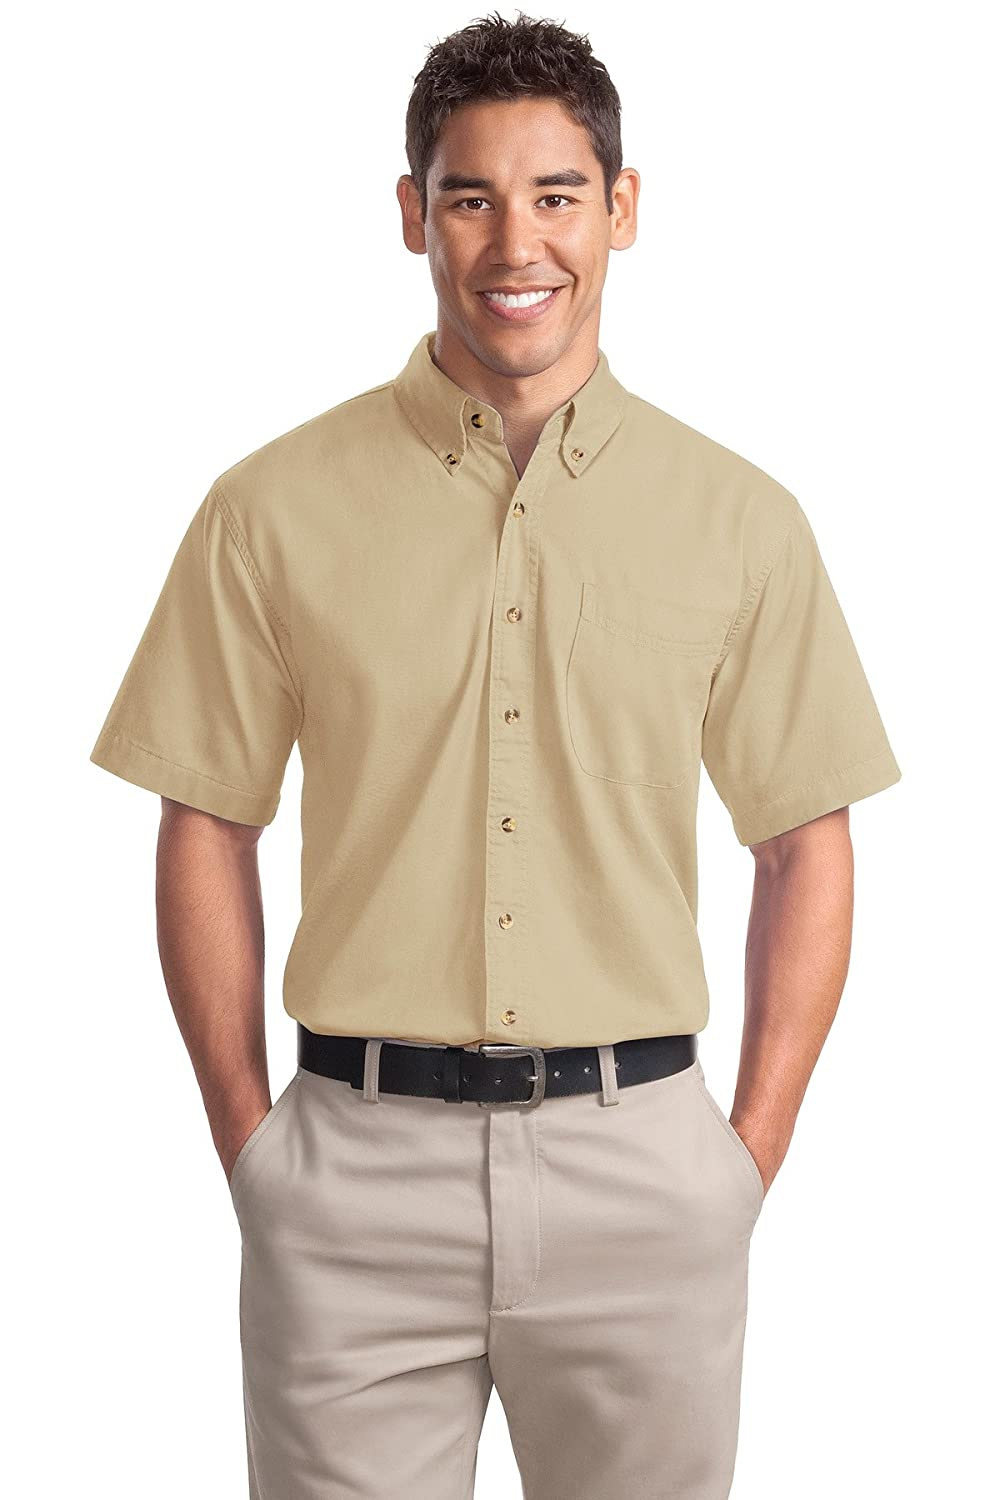 Asquith - Fox Men's Classic Fit Contrast Polo Shirt